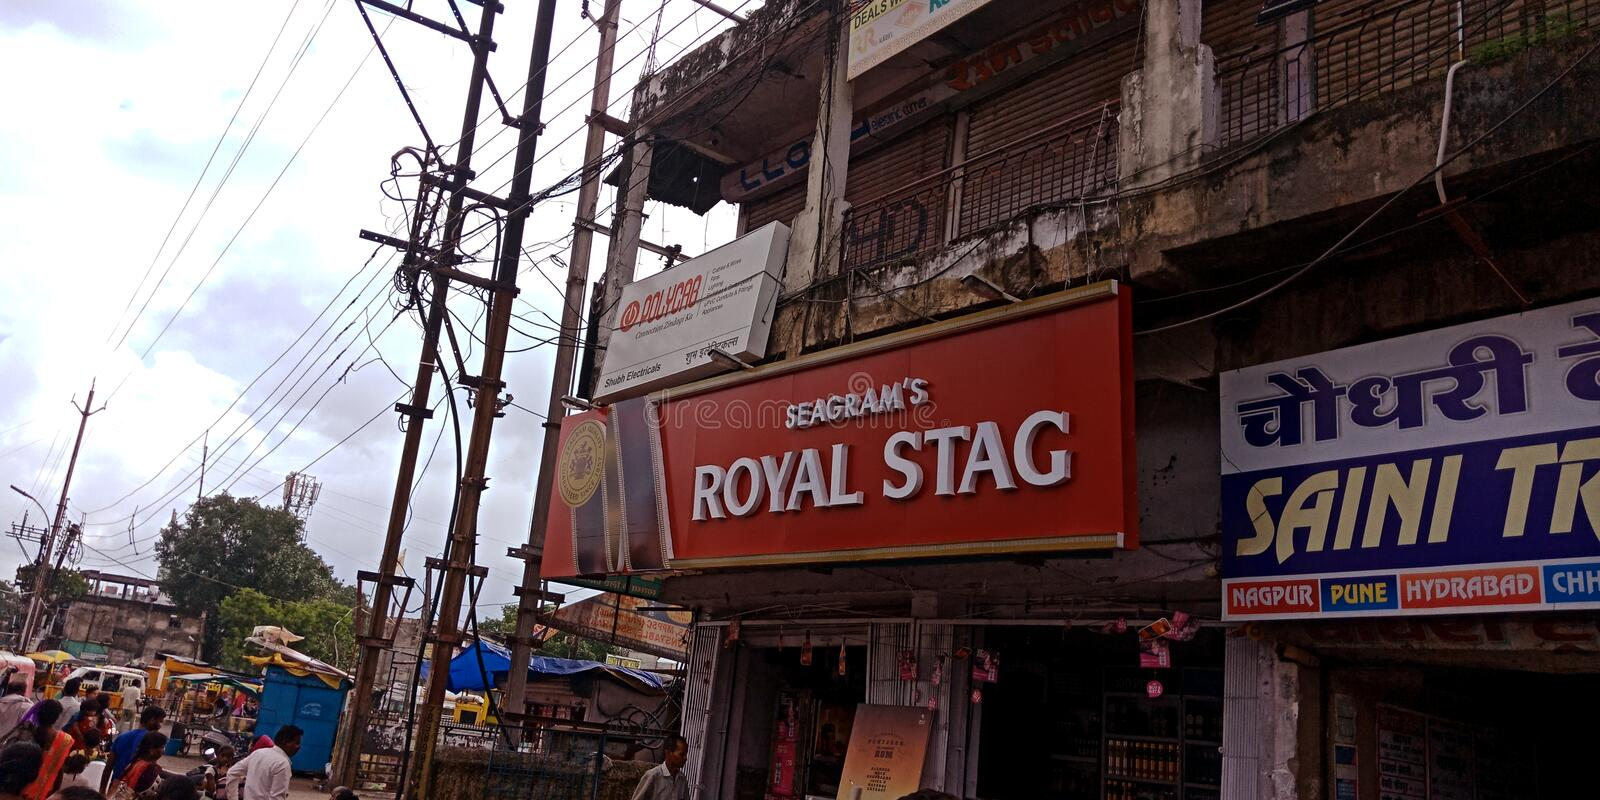 Royal stag wine shop at market. Dena, bank, branch, main, madhya, pradesh, energy, development, corporation, indian, police, control, room, building, women stock photo